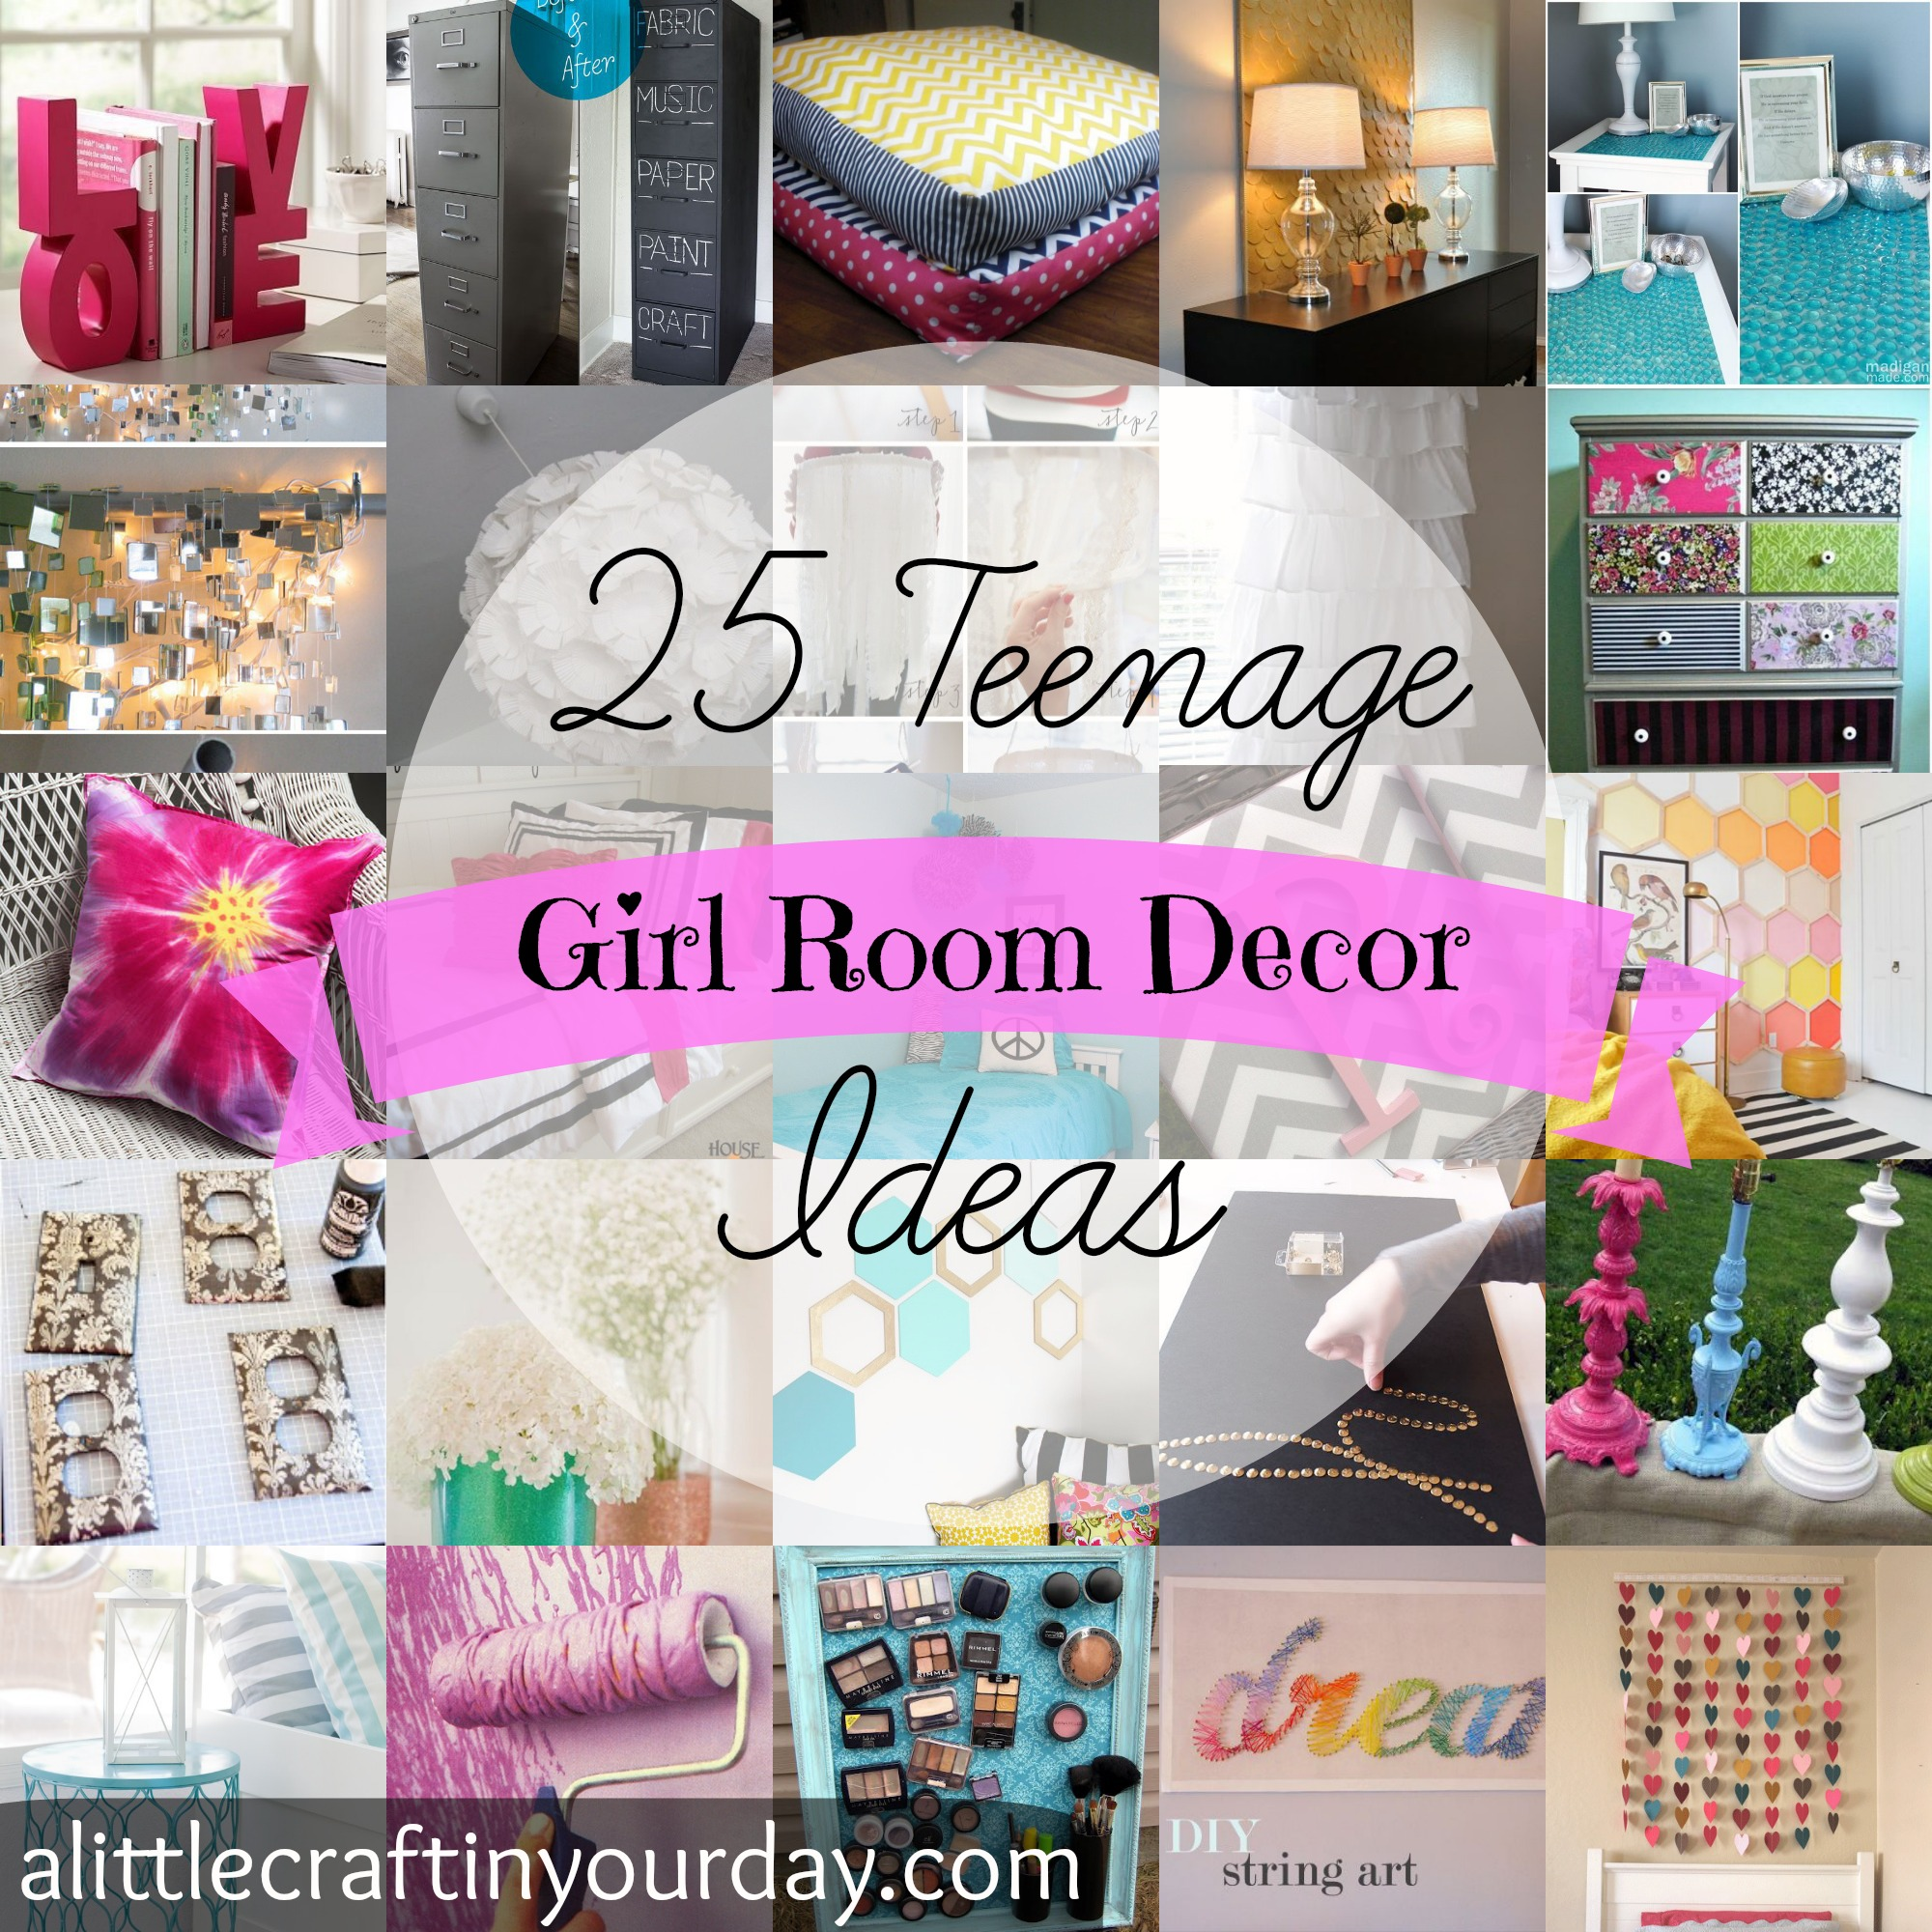 Phenomenal 25 Teenage Girl Room Decor Ideas A Little Craft In Your Day Home Interior And Landscaping Ologienasavecom